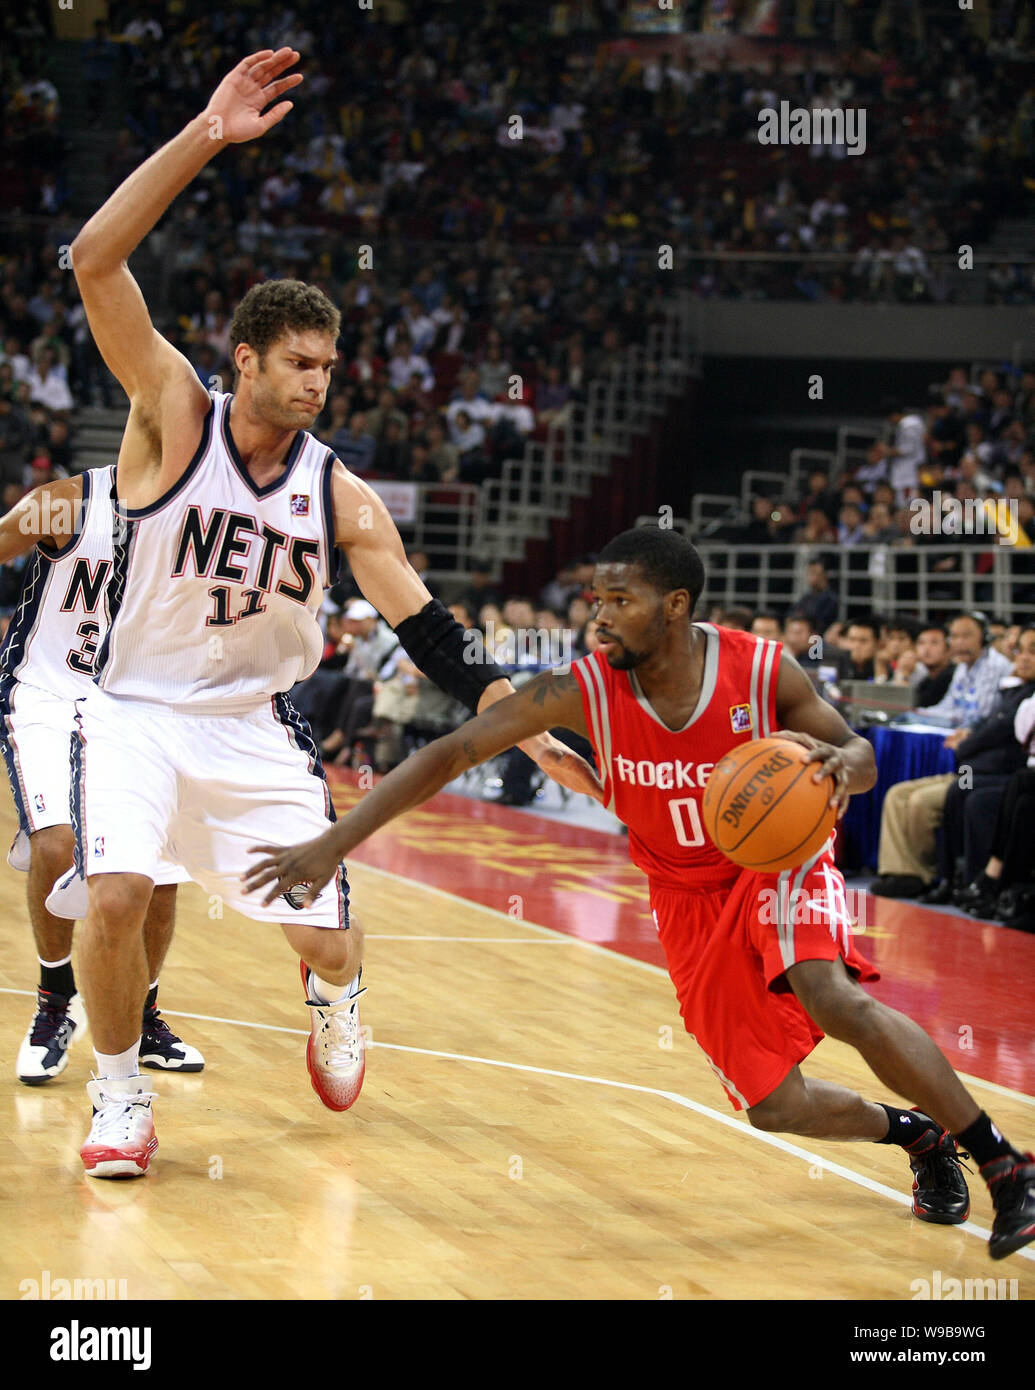 best sneakers 8ad61 bb1a1 Aaron Brooks of the Houston Rockets, right, drives against ...